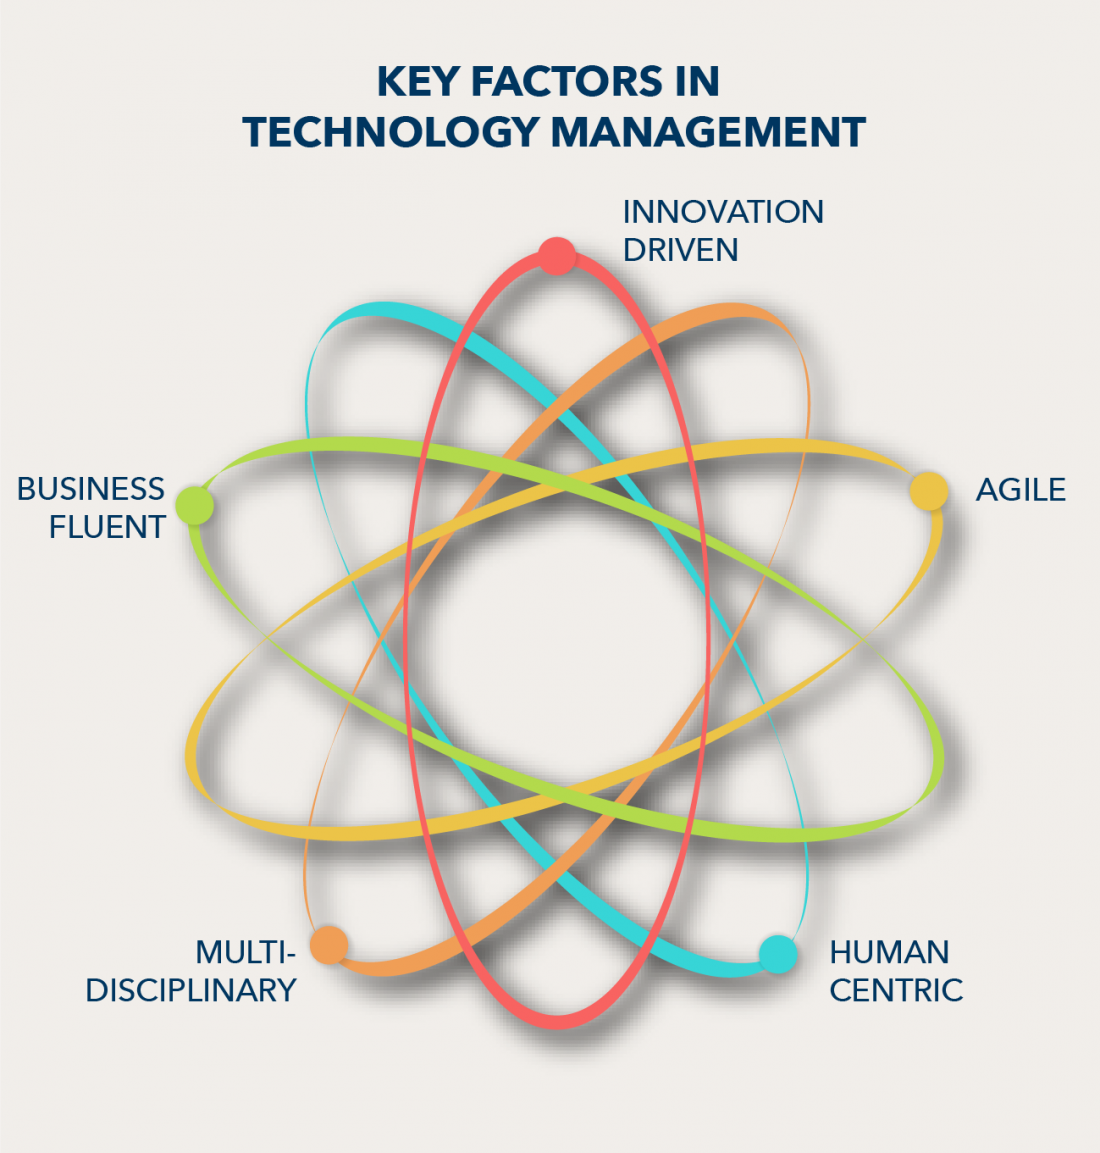 overlapping circles showing five key factors influencing companies strategy and management including the ability to be Innovation-driven, Multi-disciplinary, Agile, Business Fluent, and Human Centric